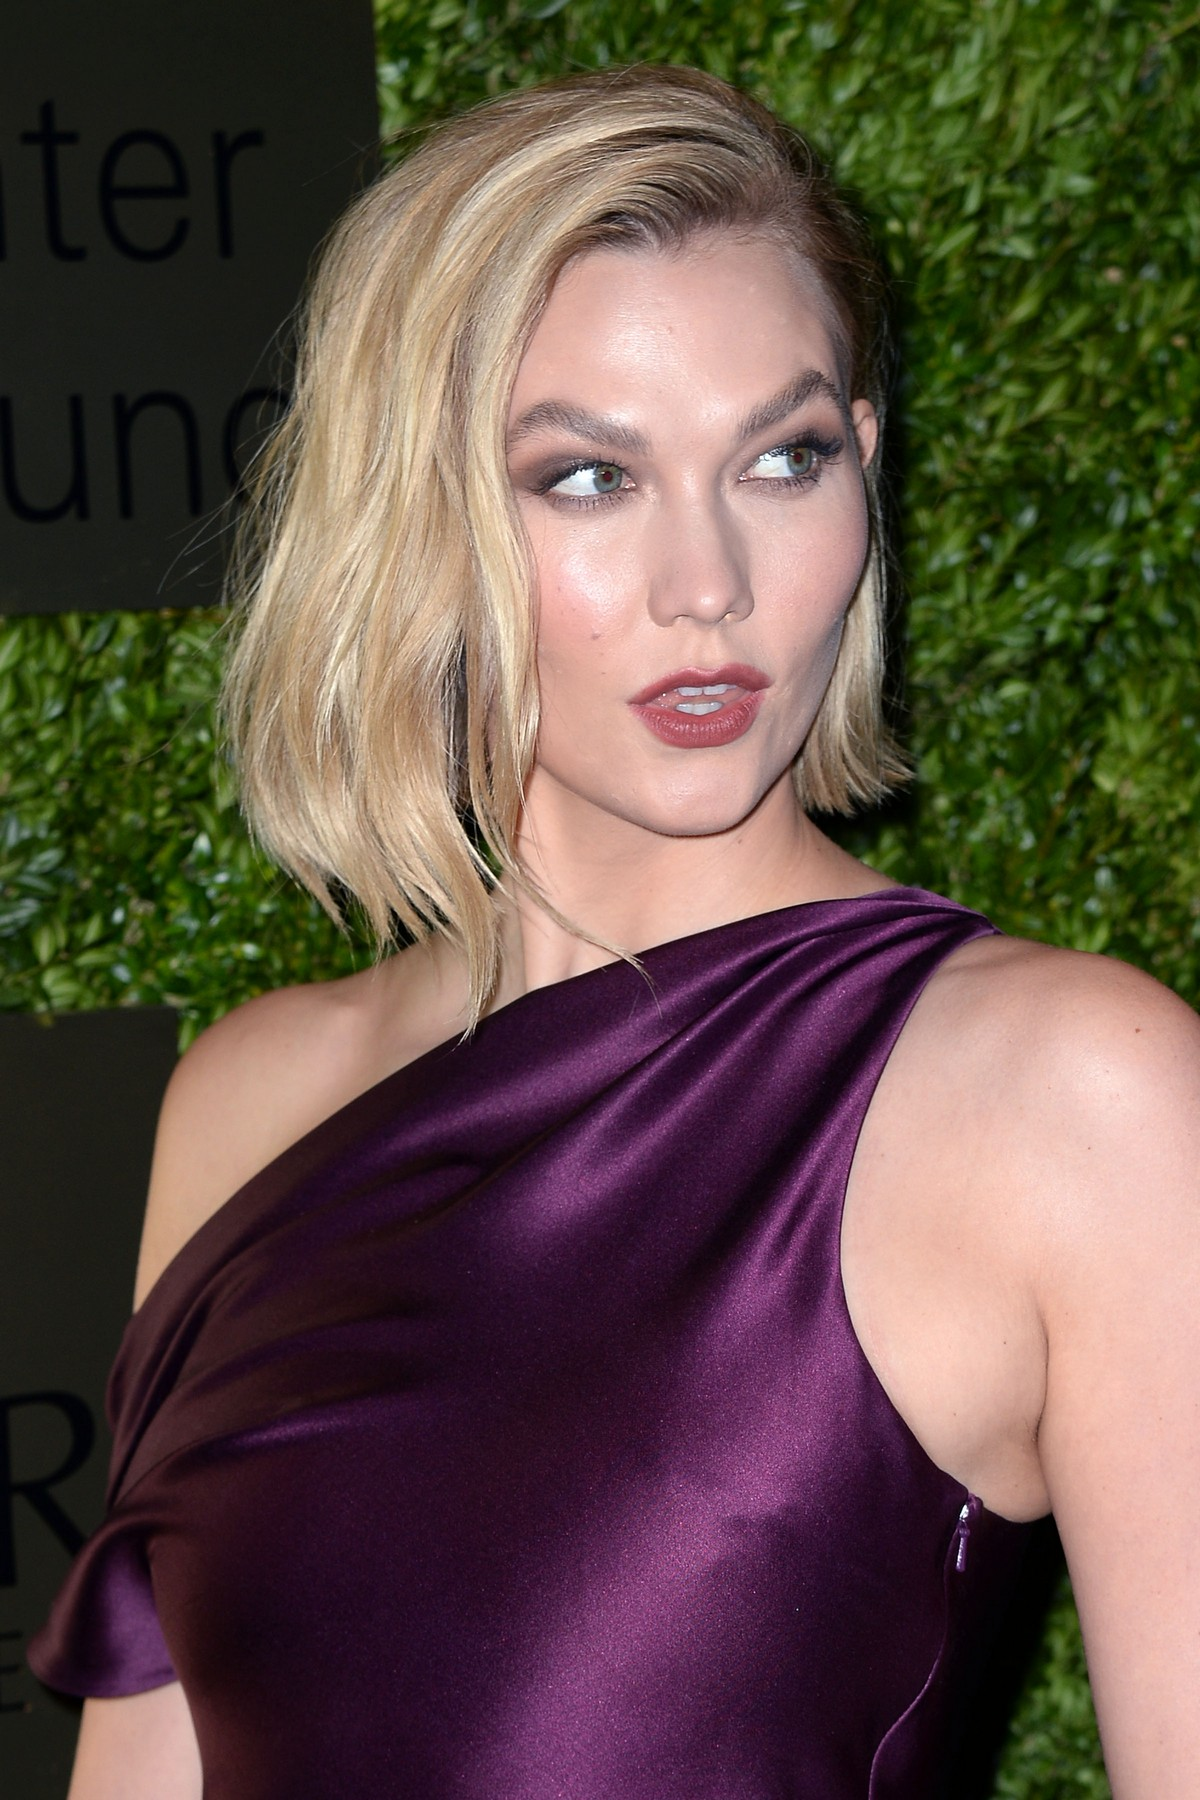 Karlie Kloss attends Lincoln Center Corporate Fashion Fund Gala in New York City 2019/11/18 1